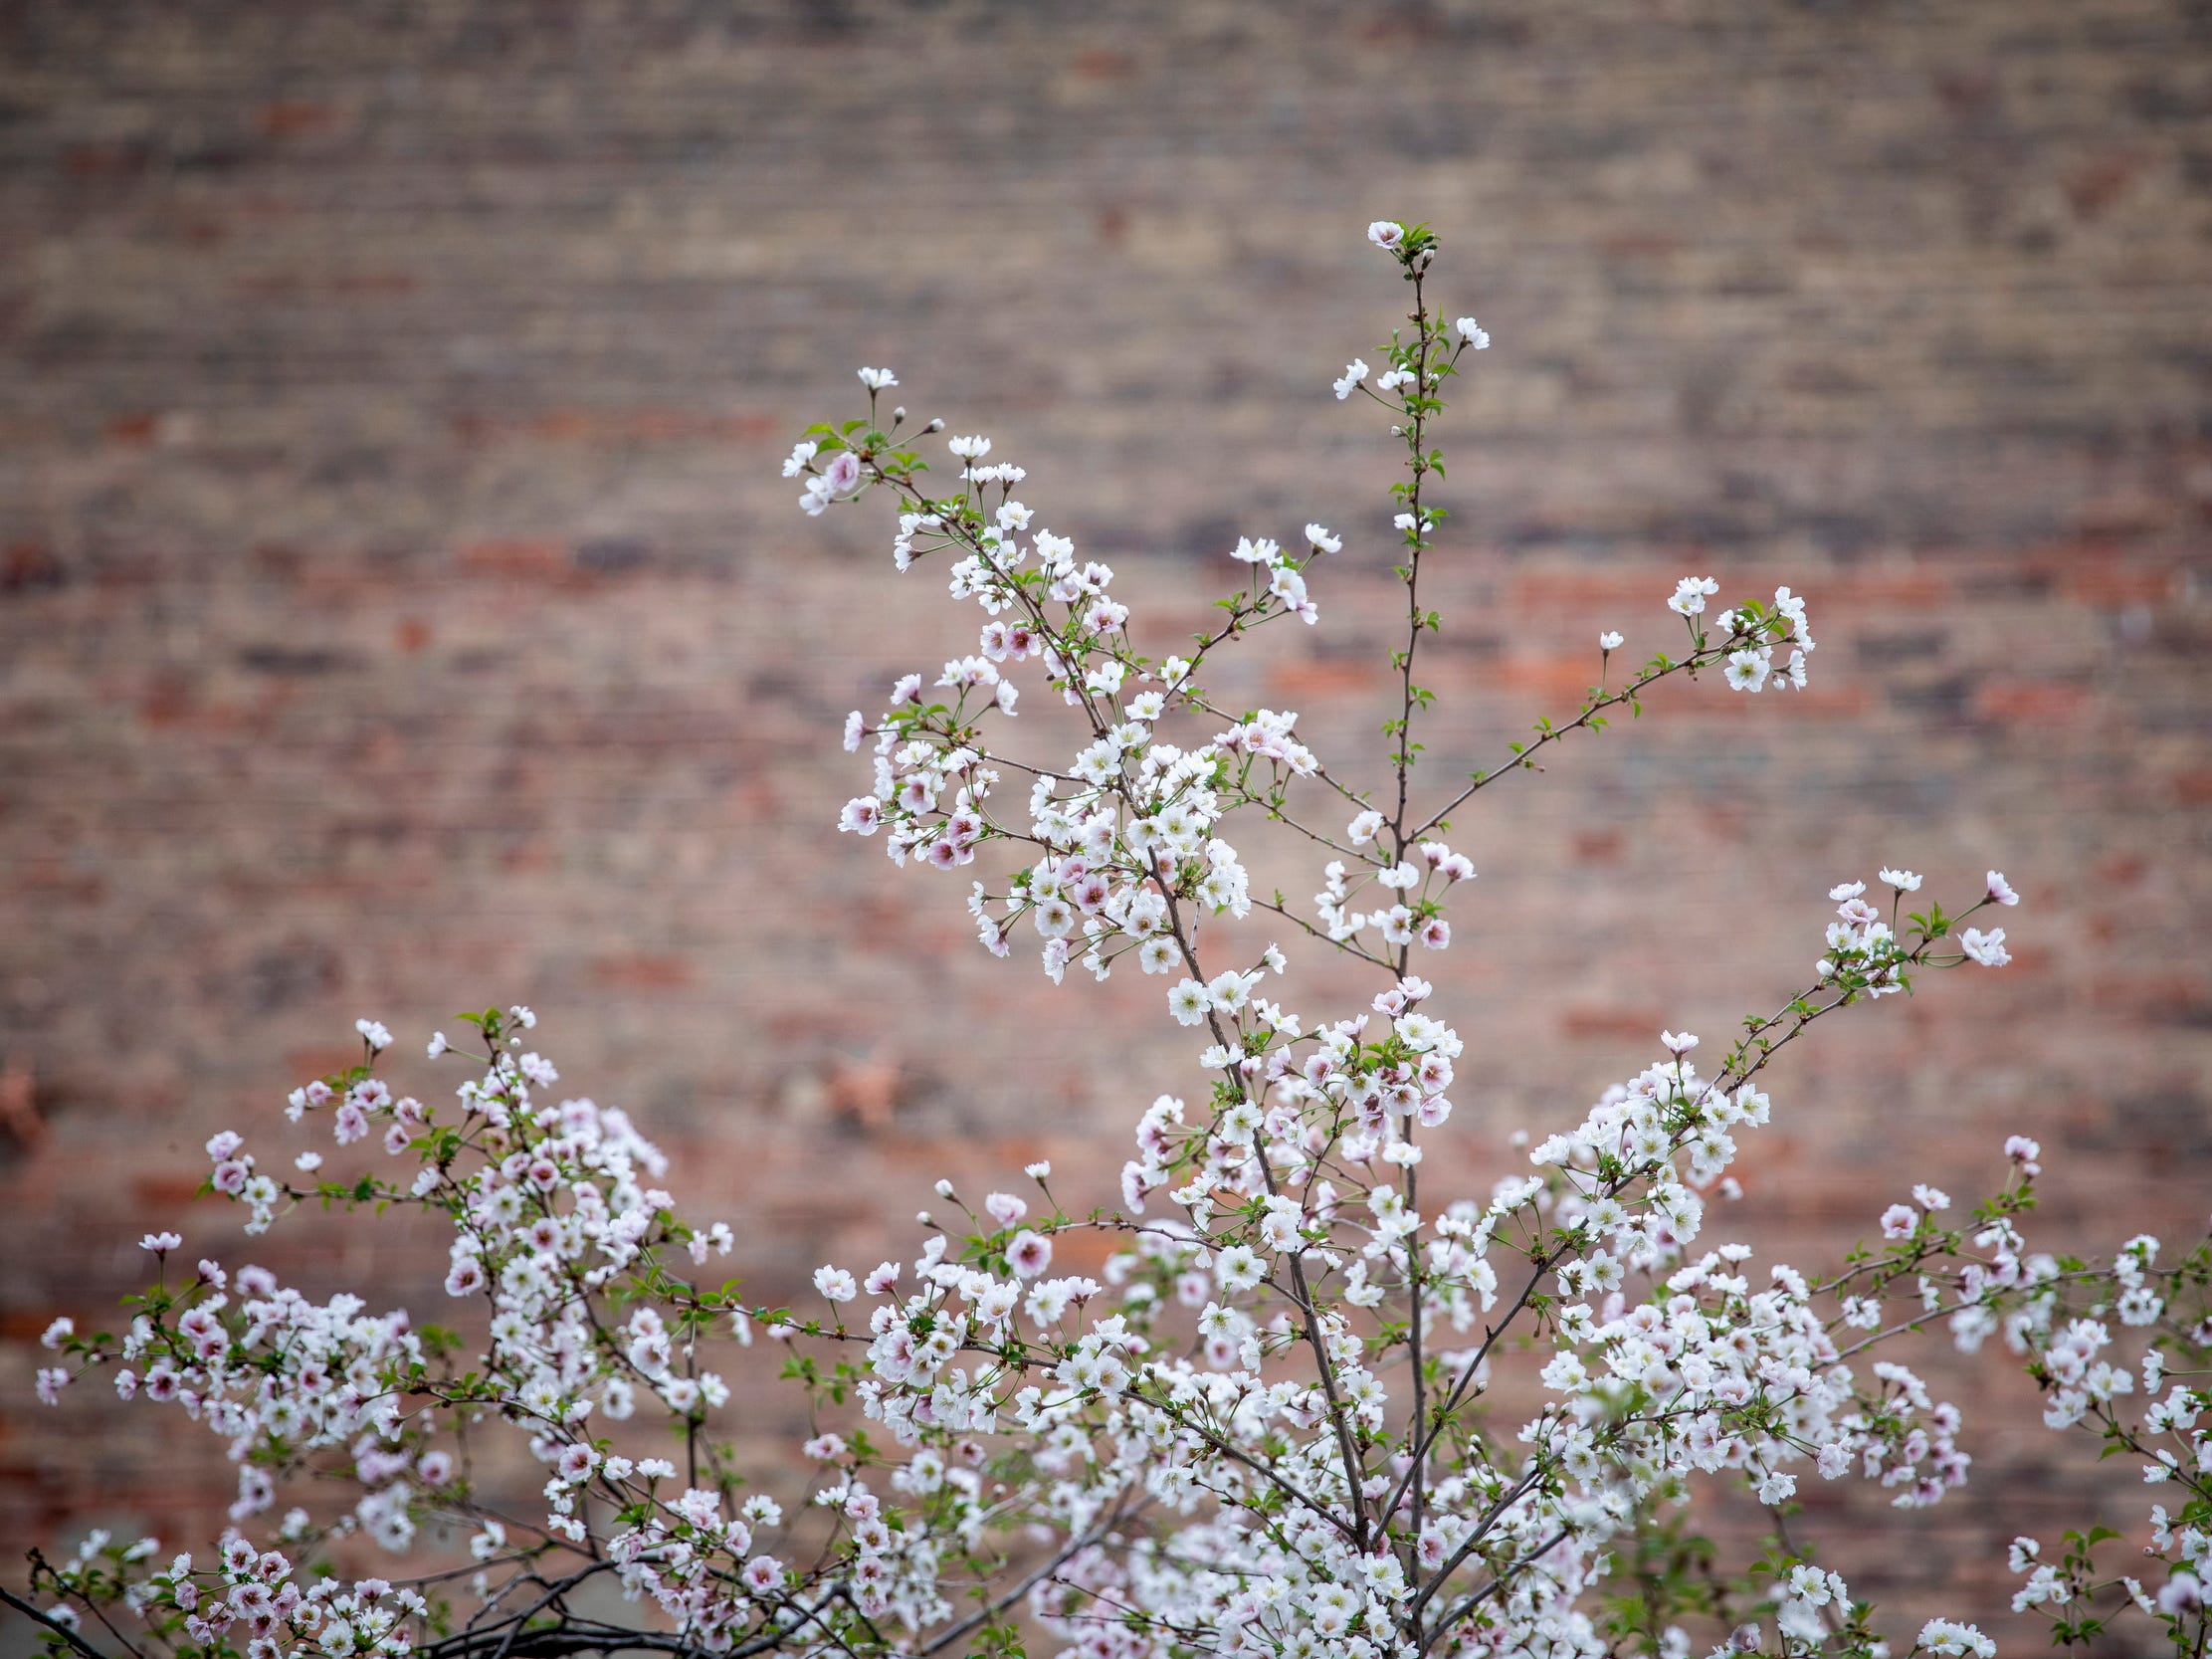 A cherry tree blooms on 14th Street in Over-the-Rhine Thursday, April 11, 2019.